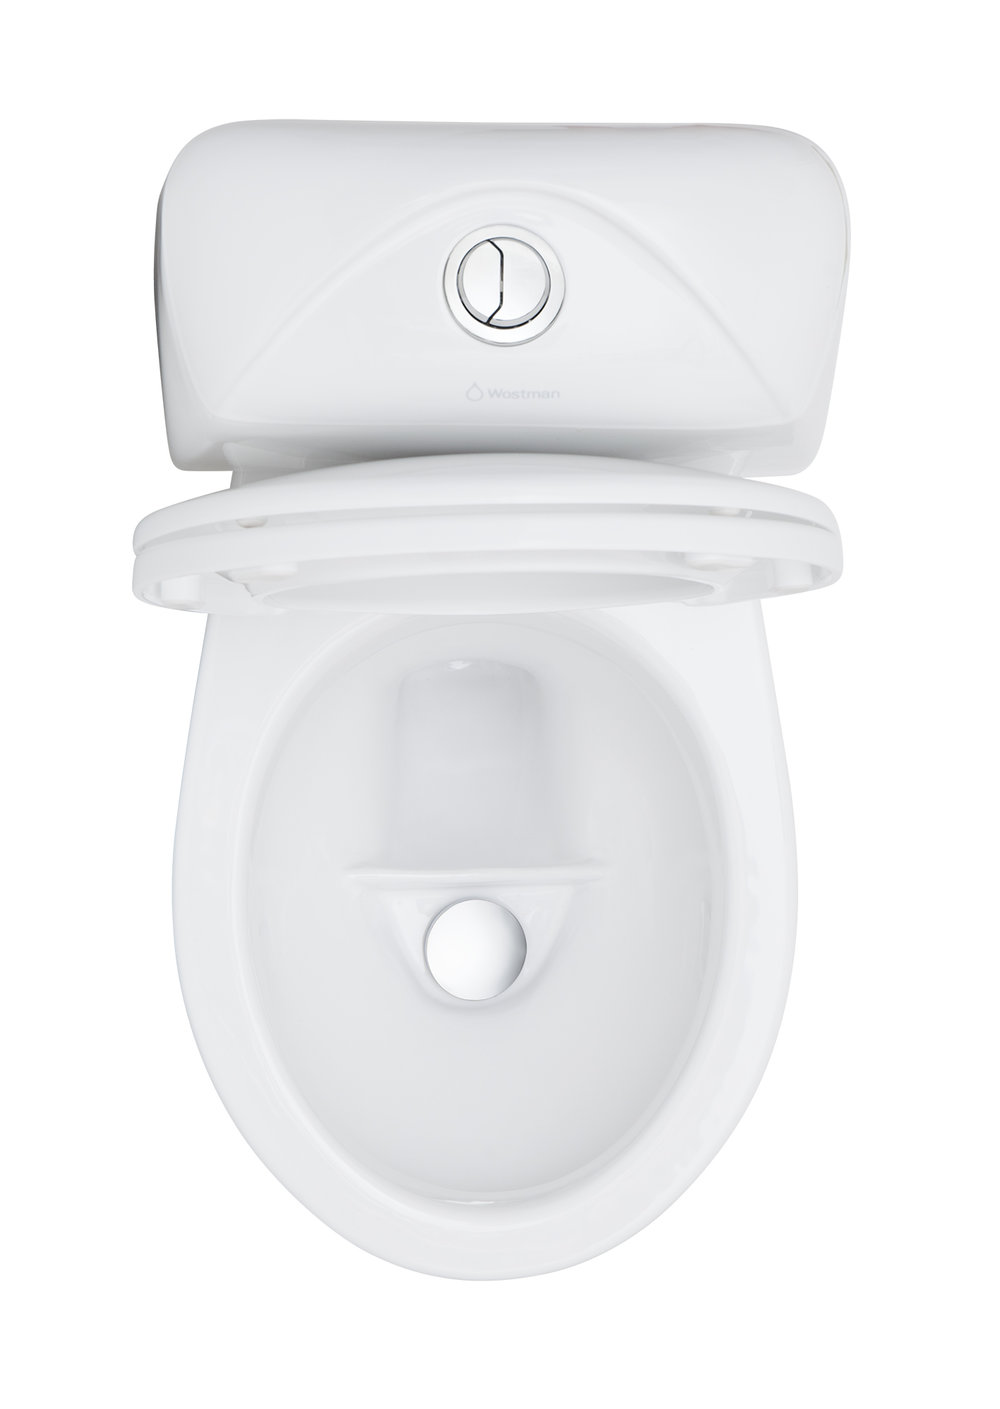 A smooth dual-flush experience. - Other dual-flush toilets can save some water, but a urine diverting one is the 10x choice for saving water and/or collecting the urine as a fertilizer.  The EcoFlush is carefully designed and redesigned for many years with the goal to make the ecological experience as smooth as the standard toilet one.In the front bowl, the urine smoothly pours down besides the chrome lid, and in the back it works similar to a regular toilet. See the video above for a better look.